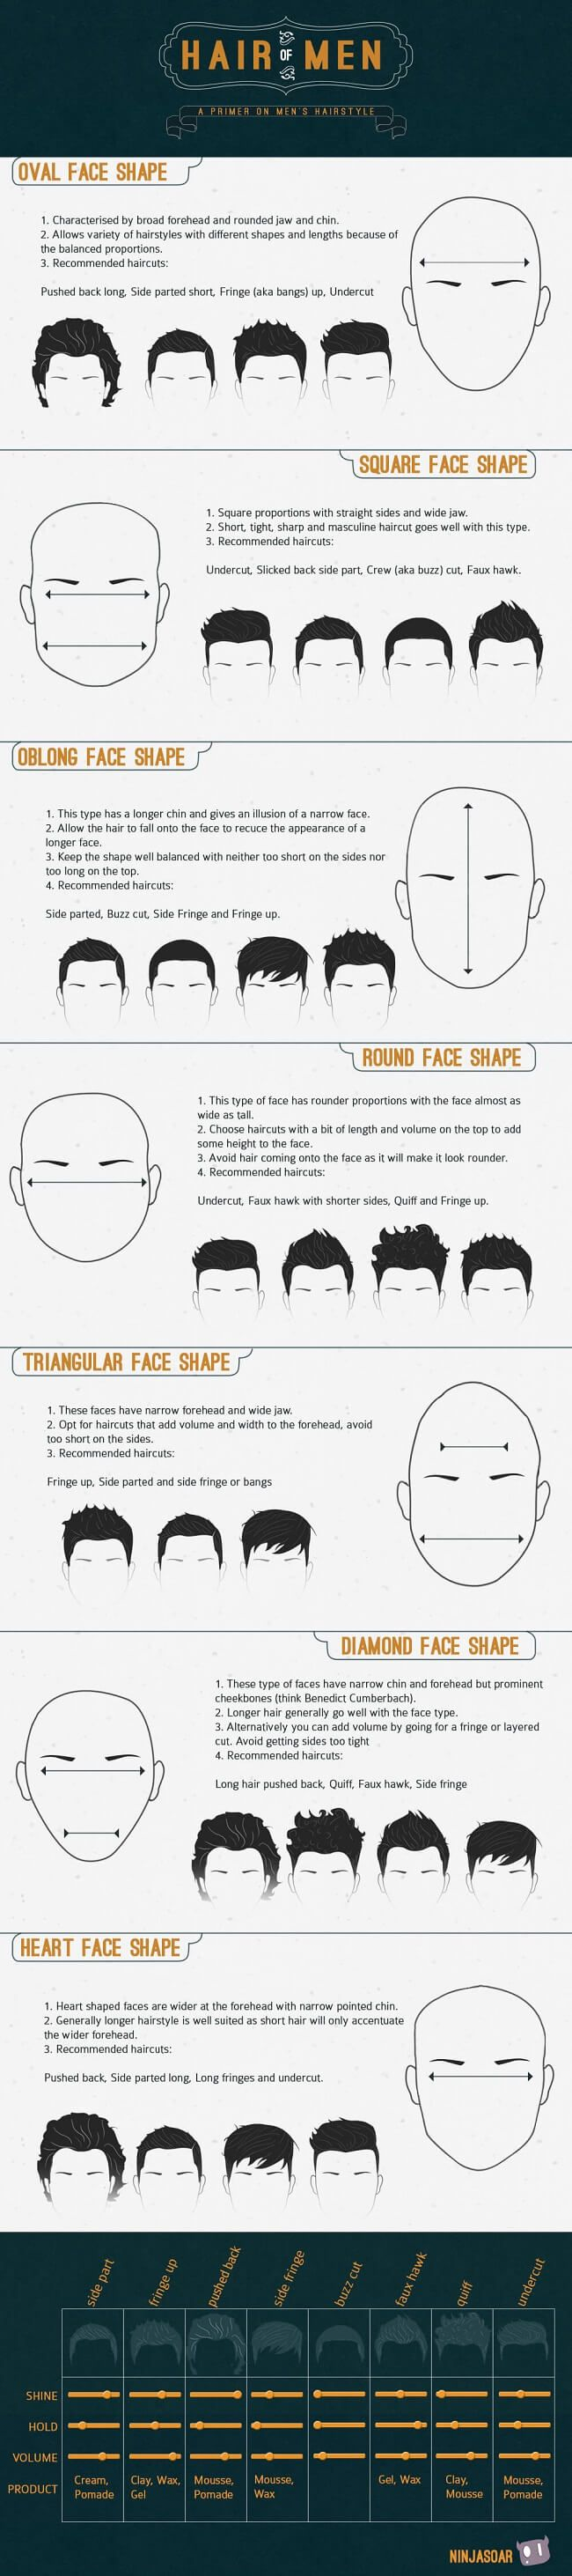 TwitterFacebookWhatsAppGoogle+BufferLinkedIn Published by: Ninjasoar Original source: here TIPS FOR:men's care, men's grooming, men's look, men's style, hairstyle Related Tips... Thin Hair Vs Thick Hair How Protein Softens Hair Gents Pinpoint your Next Hairstyle